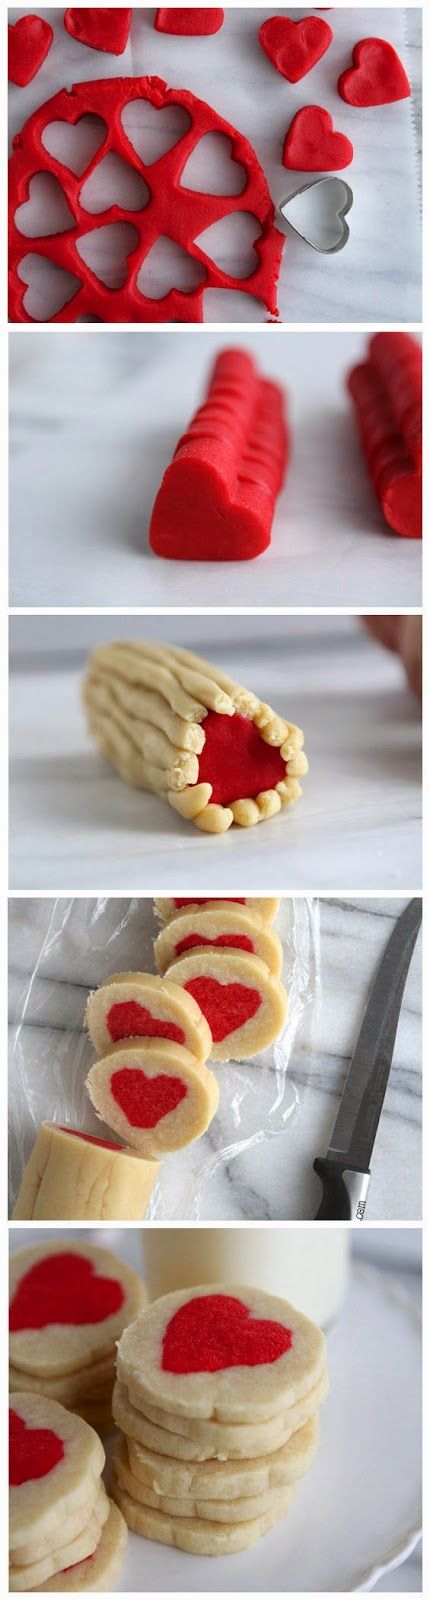 Slice n' Bake Heart Cookies<<< These look like those one cookies that Dil ate in Dan and Phil play Sims 4